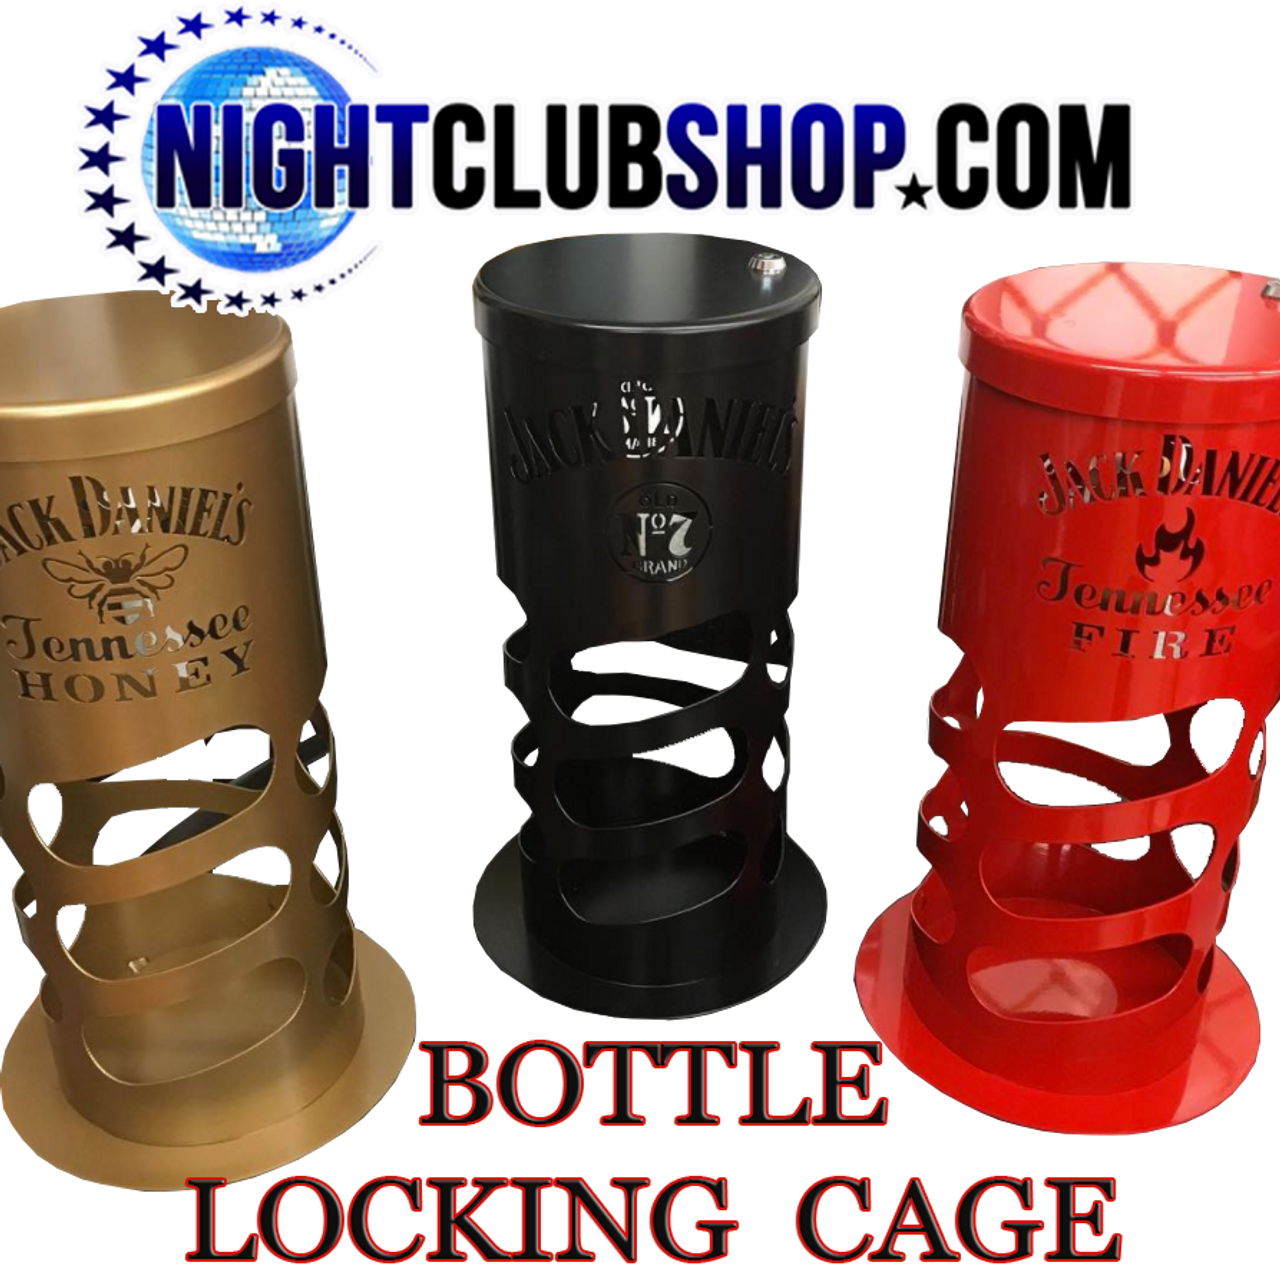 Nightclub_lounge_bar_event_locking_Liquor_cage_Lock_box_key_bottle_service_delivery_security_locking cage_Bottle Cage